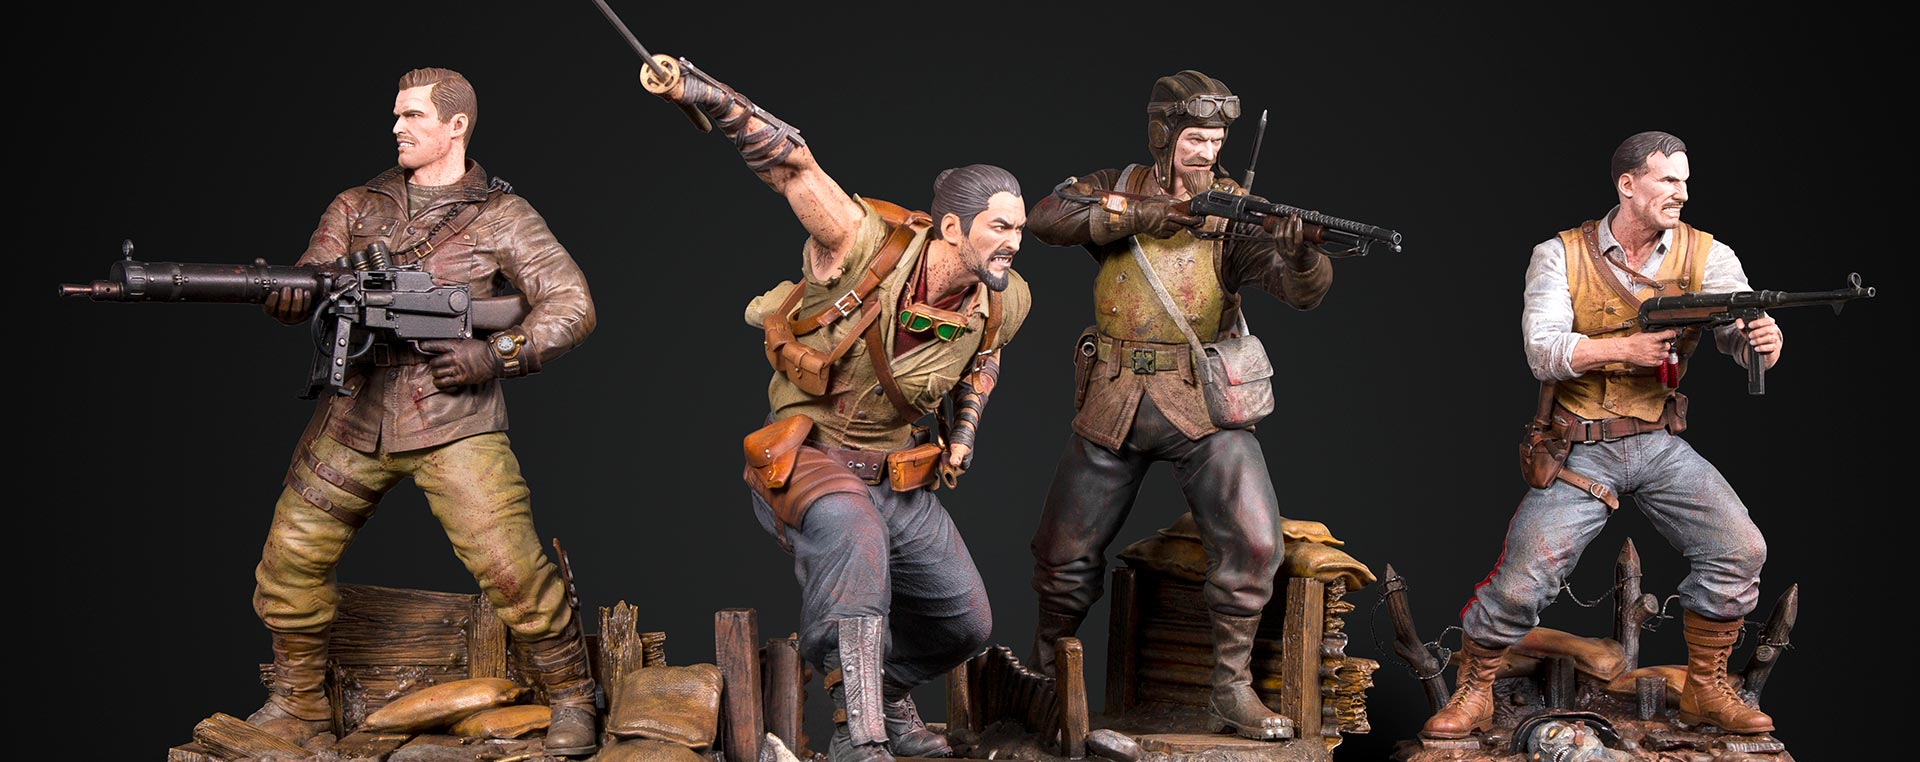 Call Of Duty Black Ops Origins Statue Series Announced